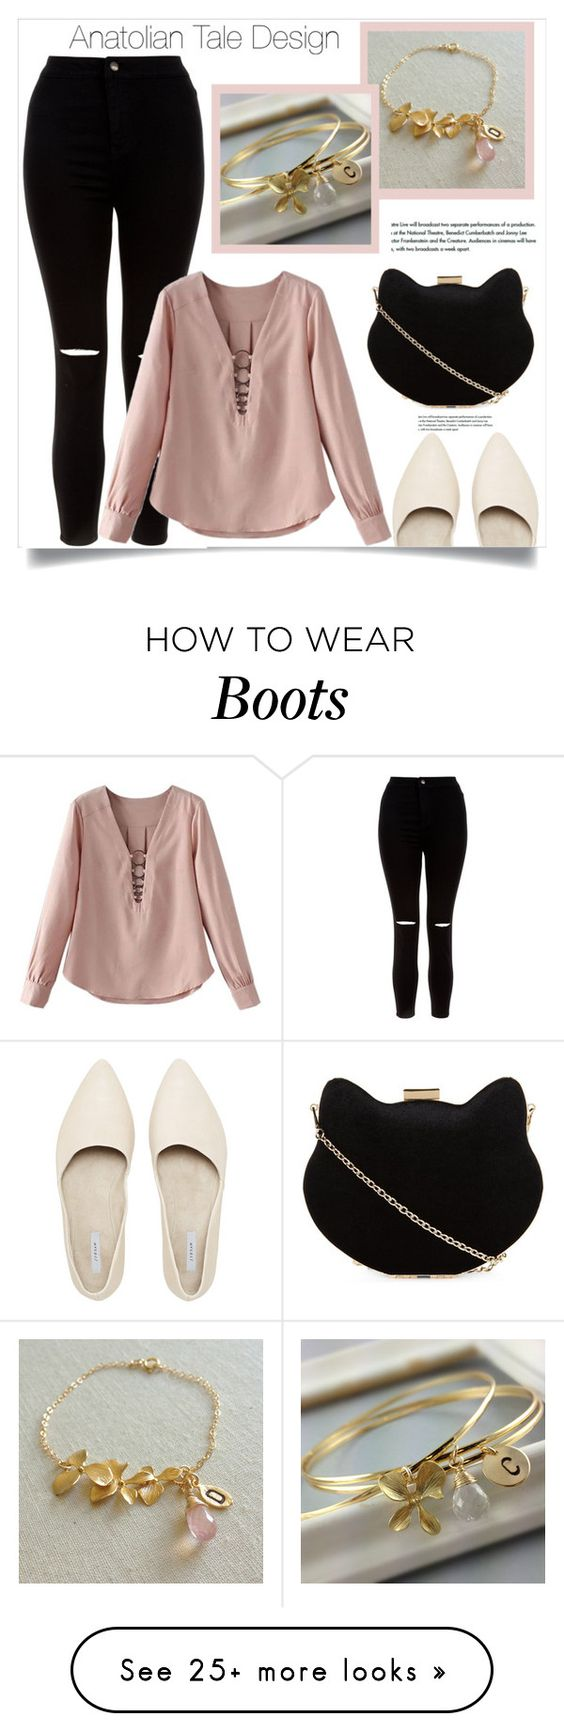 """""""Anatolian Tale Design"""" by amra-mak on Polyvore featuring New Look and anatoliantaledesin"""